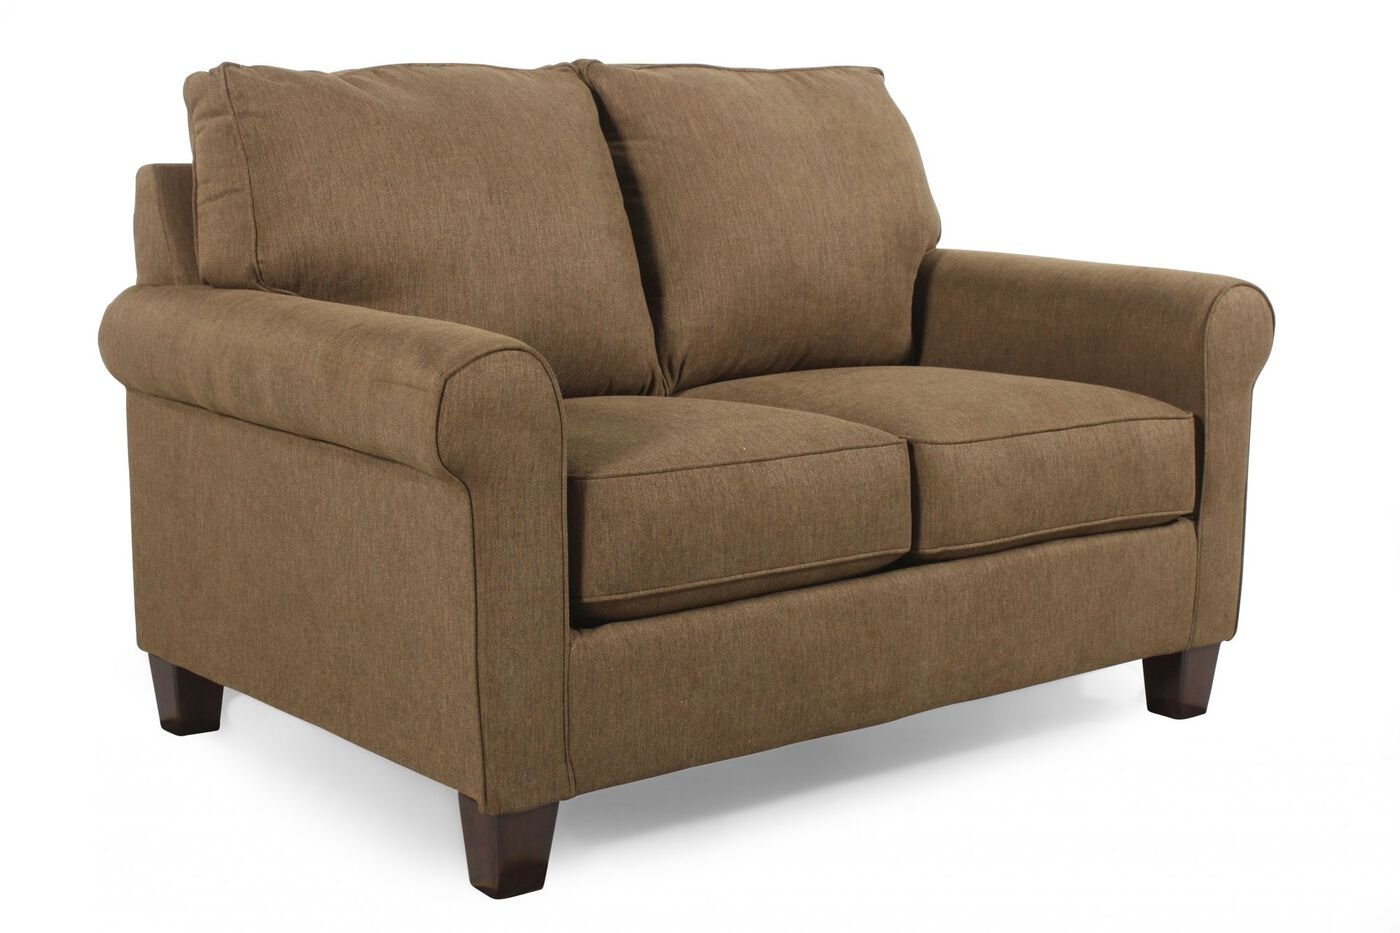 contemporary 78 twin sleeper loveseat in basil green. Black Bedroom Furniture Sets. Home Design Ideas